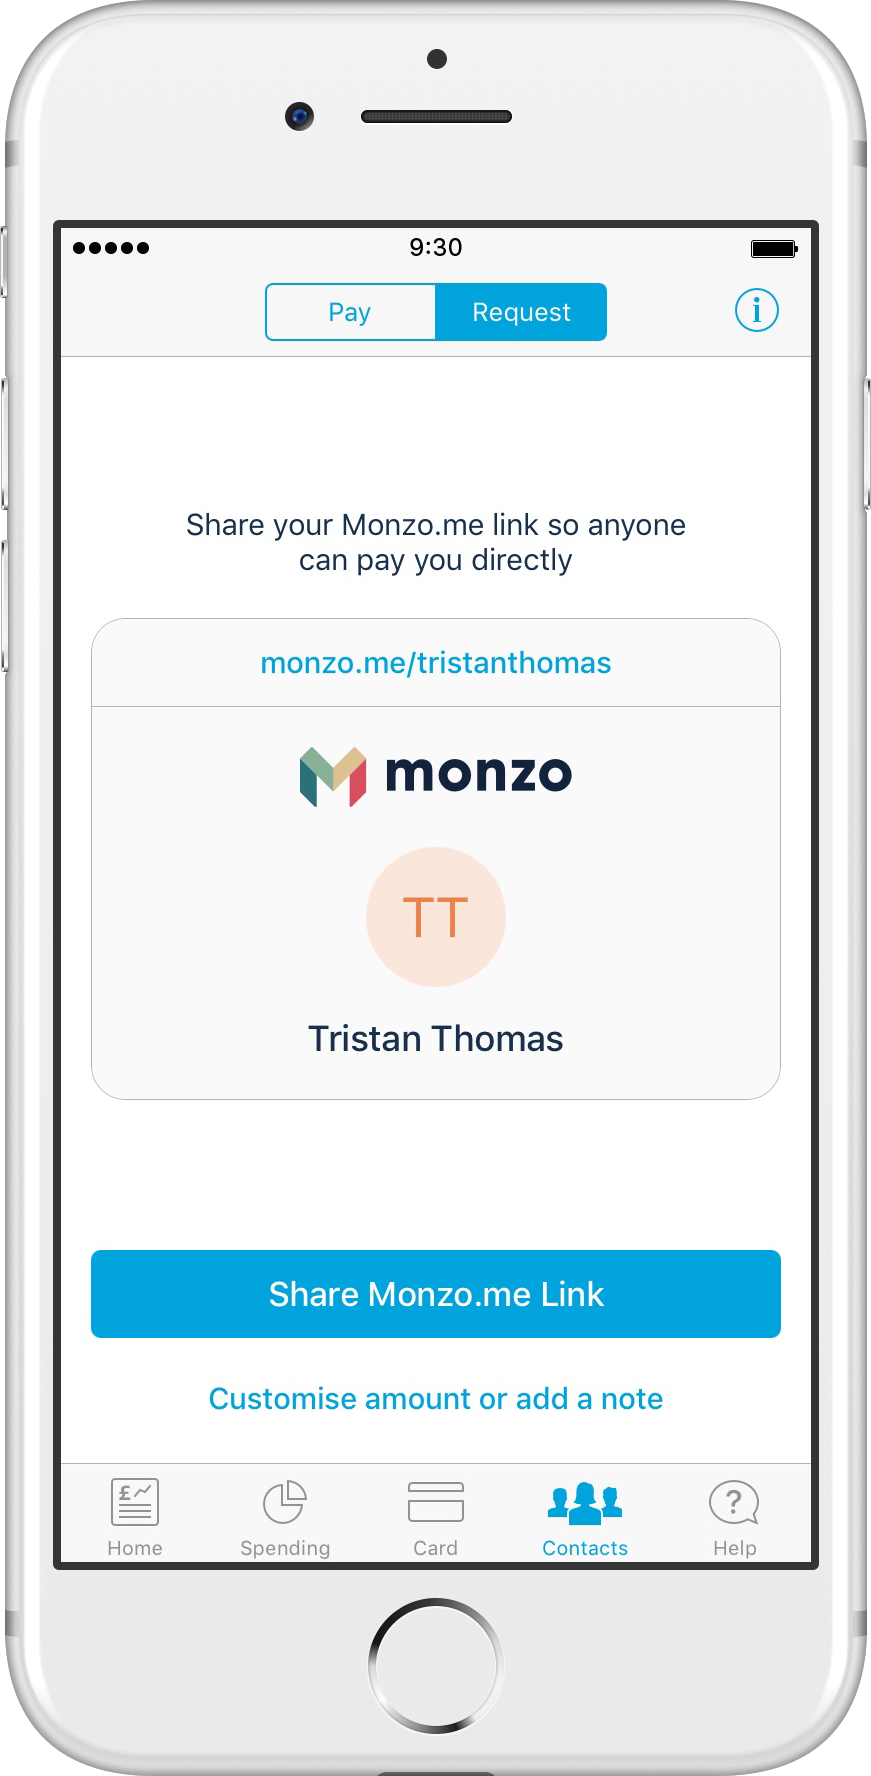 Monzo.me makes it easy to send money, and request money.